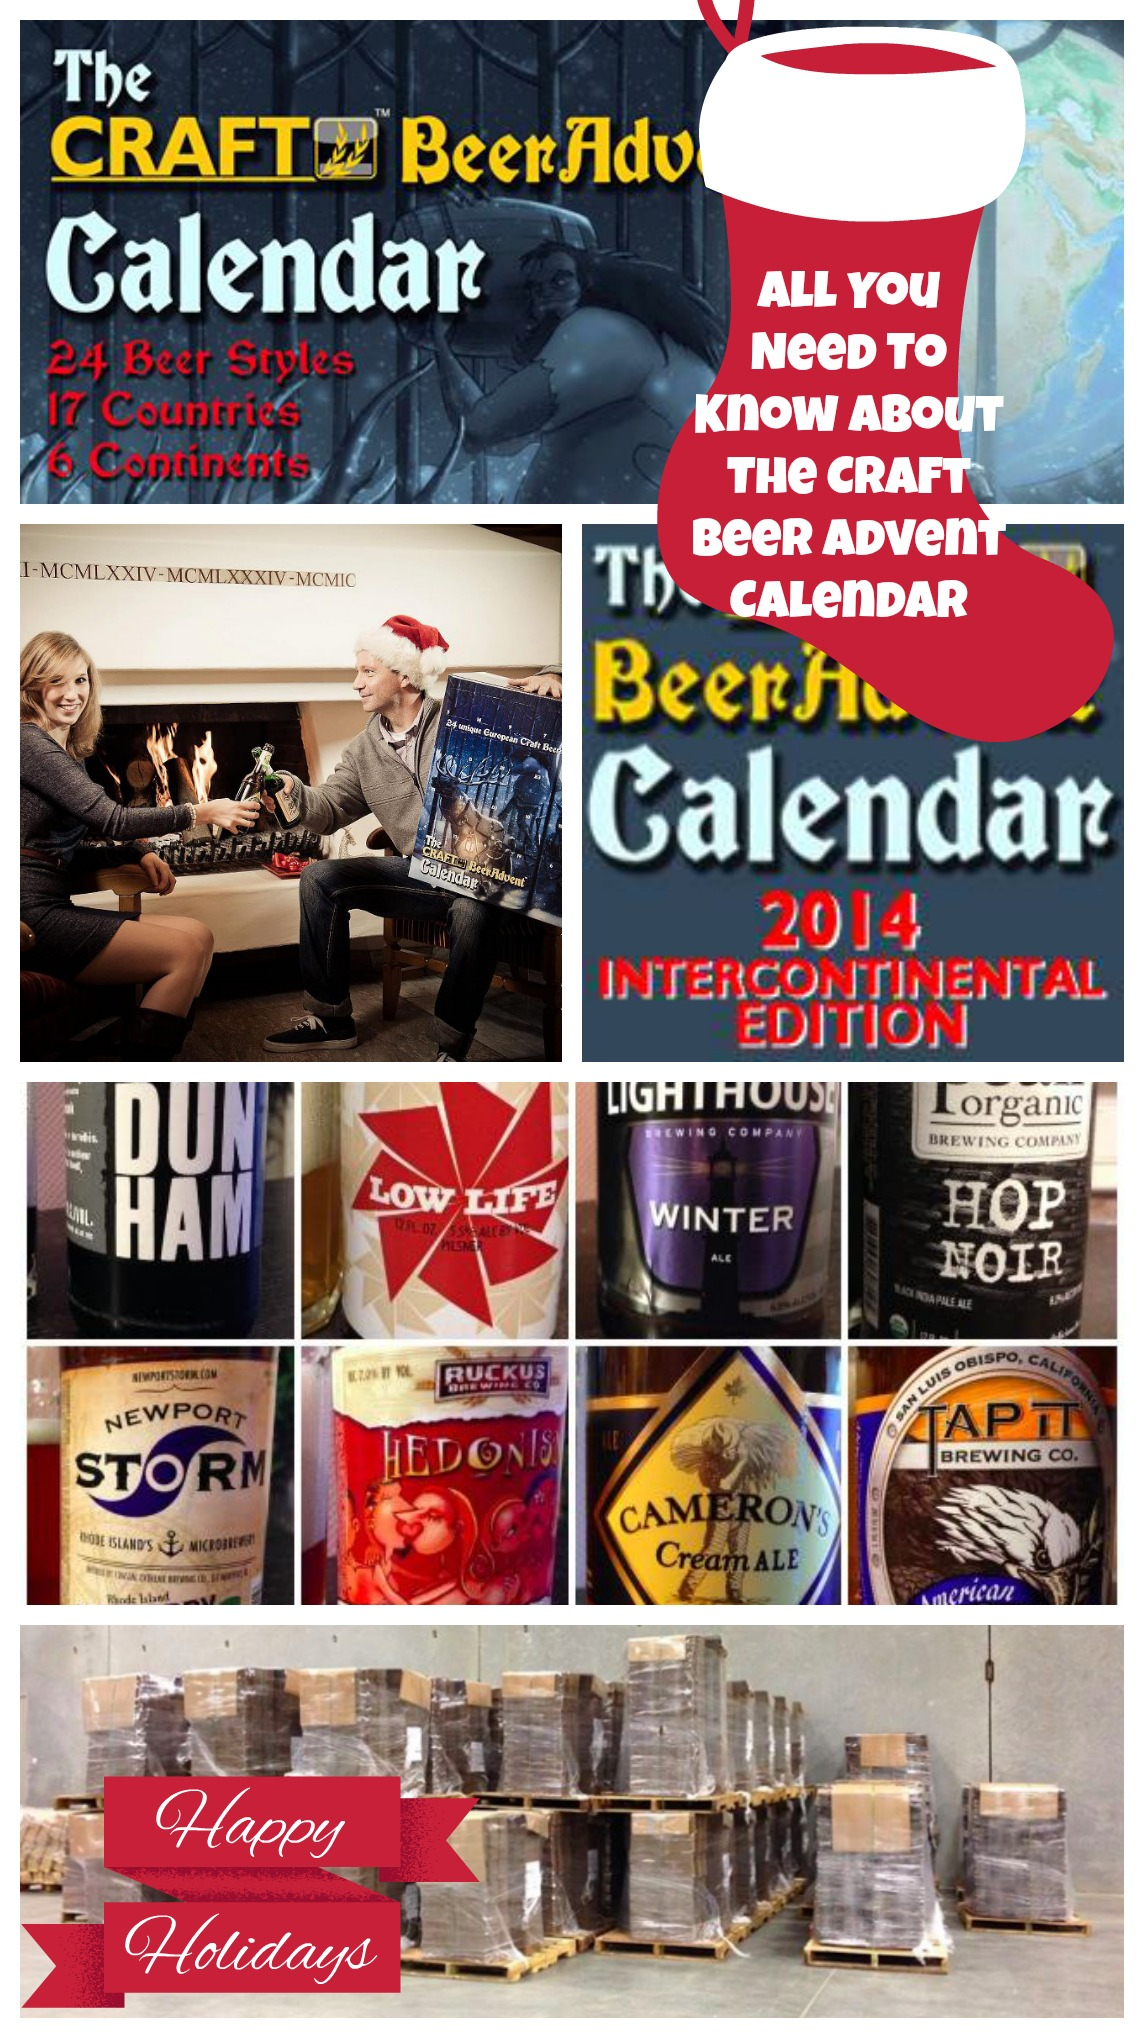 How To Order A Craft Beer Advent Calendar